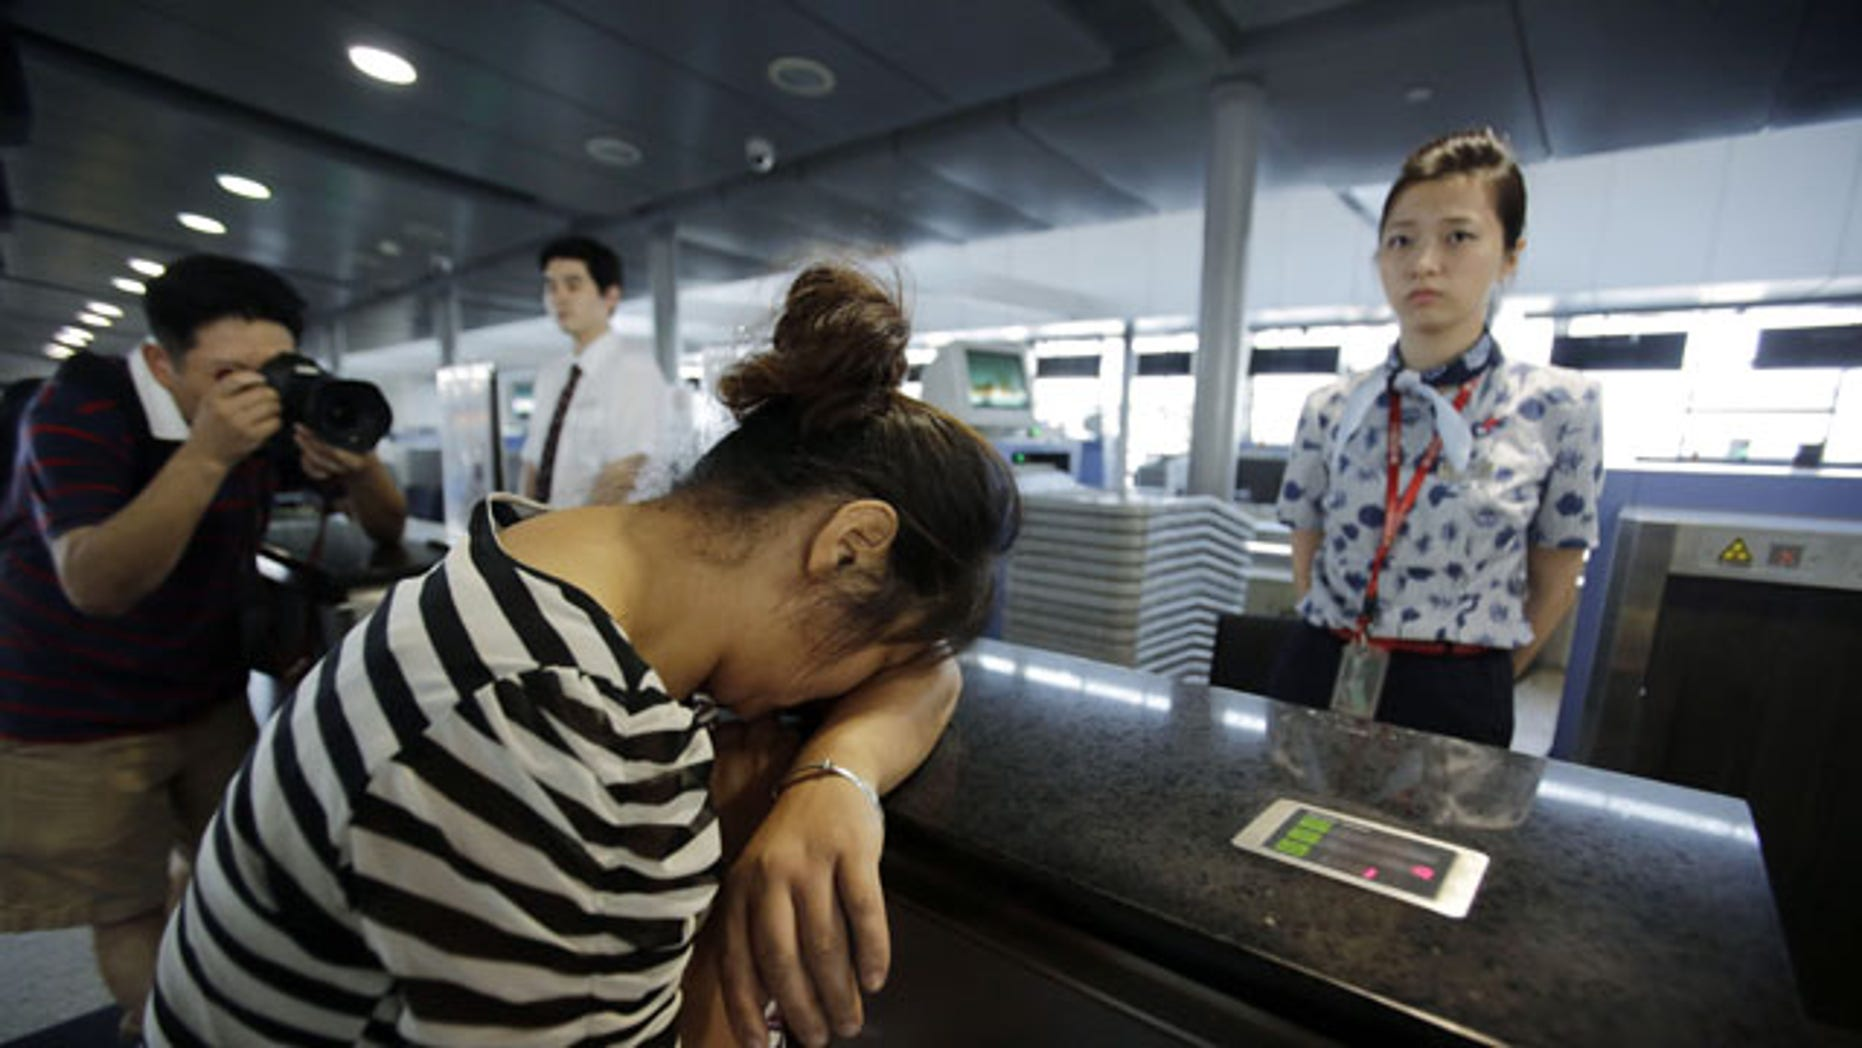 FILE - In this July 8, 2013 file photo, an unidentified family member of one of two Chinese students killed in a crash of an Asiana Airlines' plane on Saturday, cries at the airline's counter as she and other family members check in for a flight to San Francisco, at Pudong International Airport in Shanghai, China.